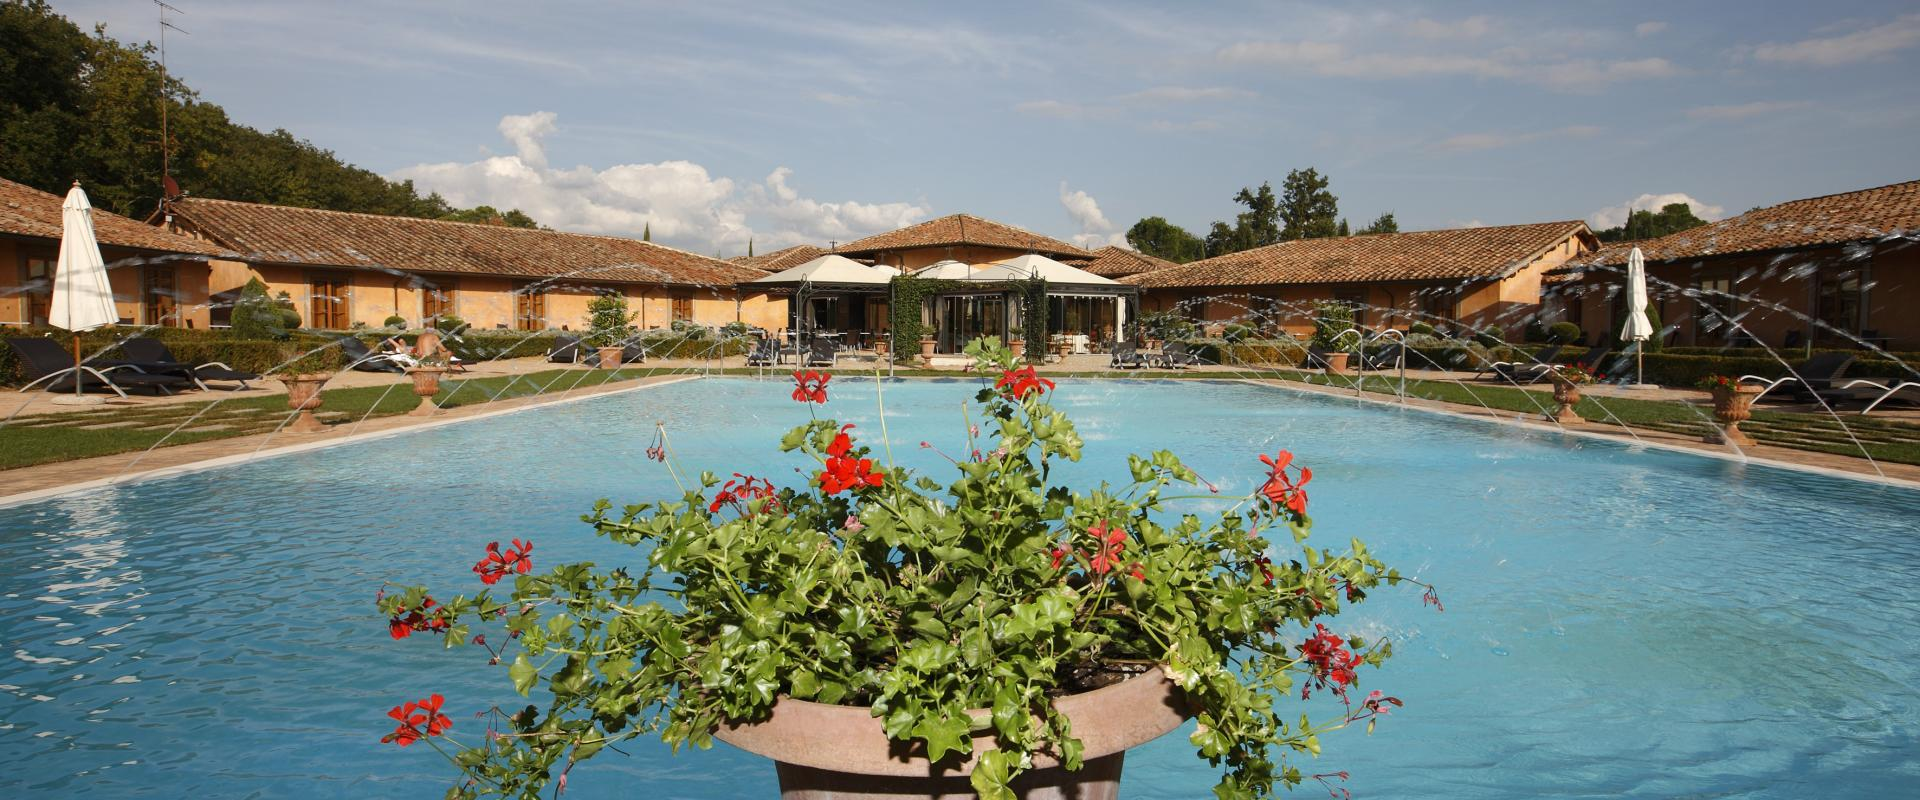 Hotel in Chianti area